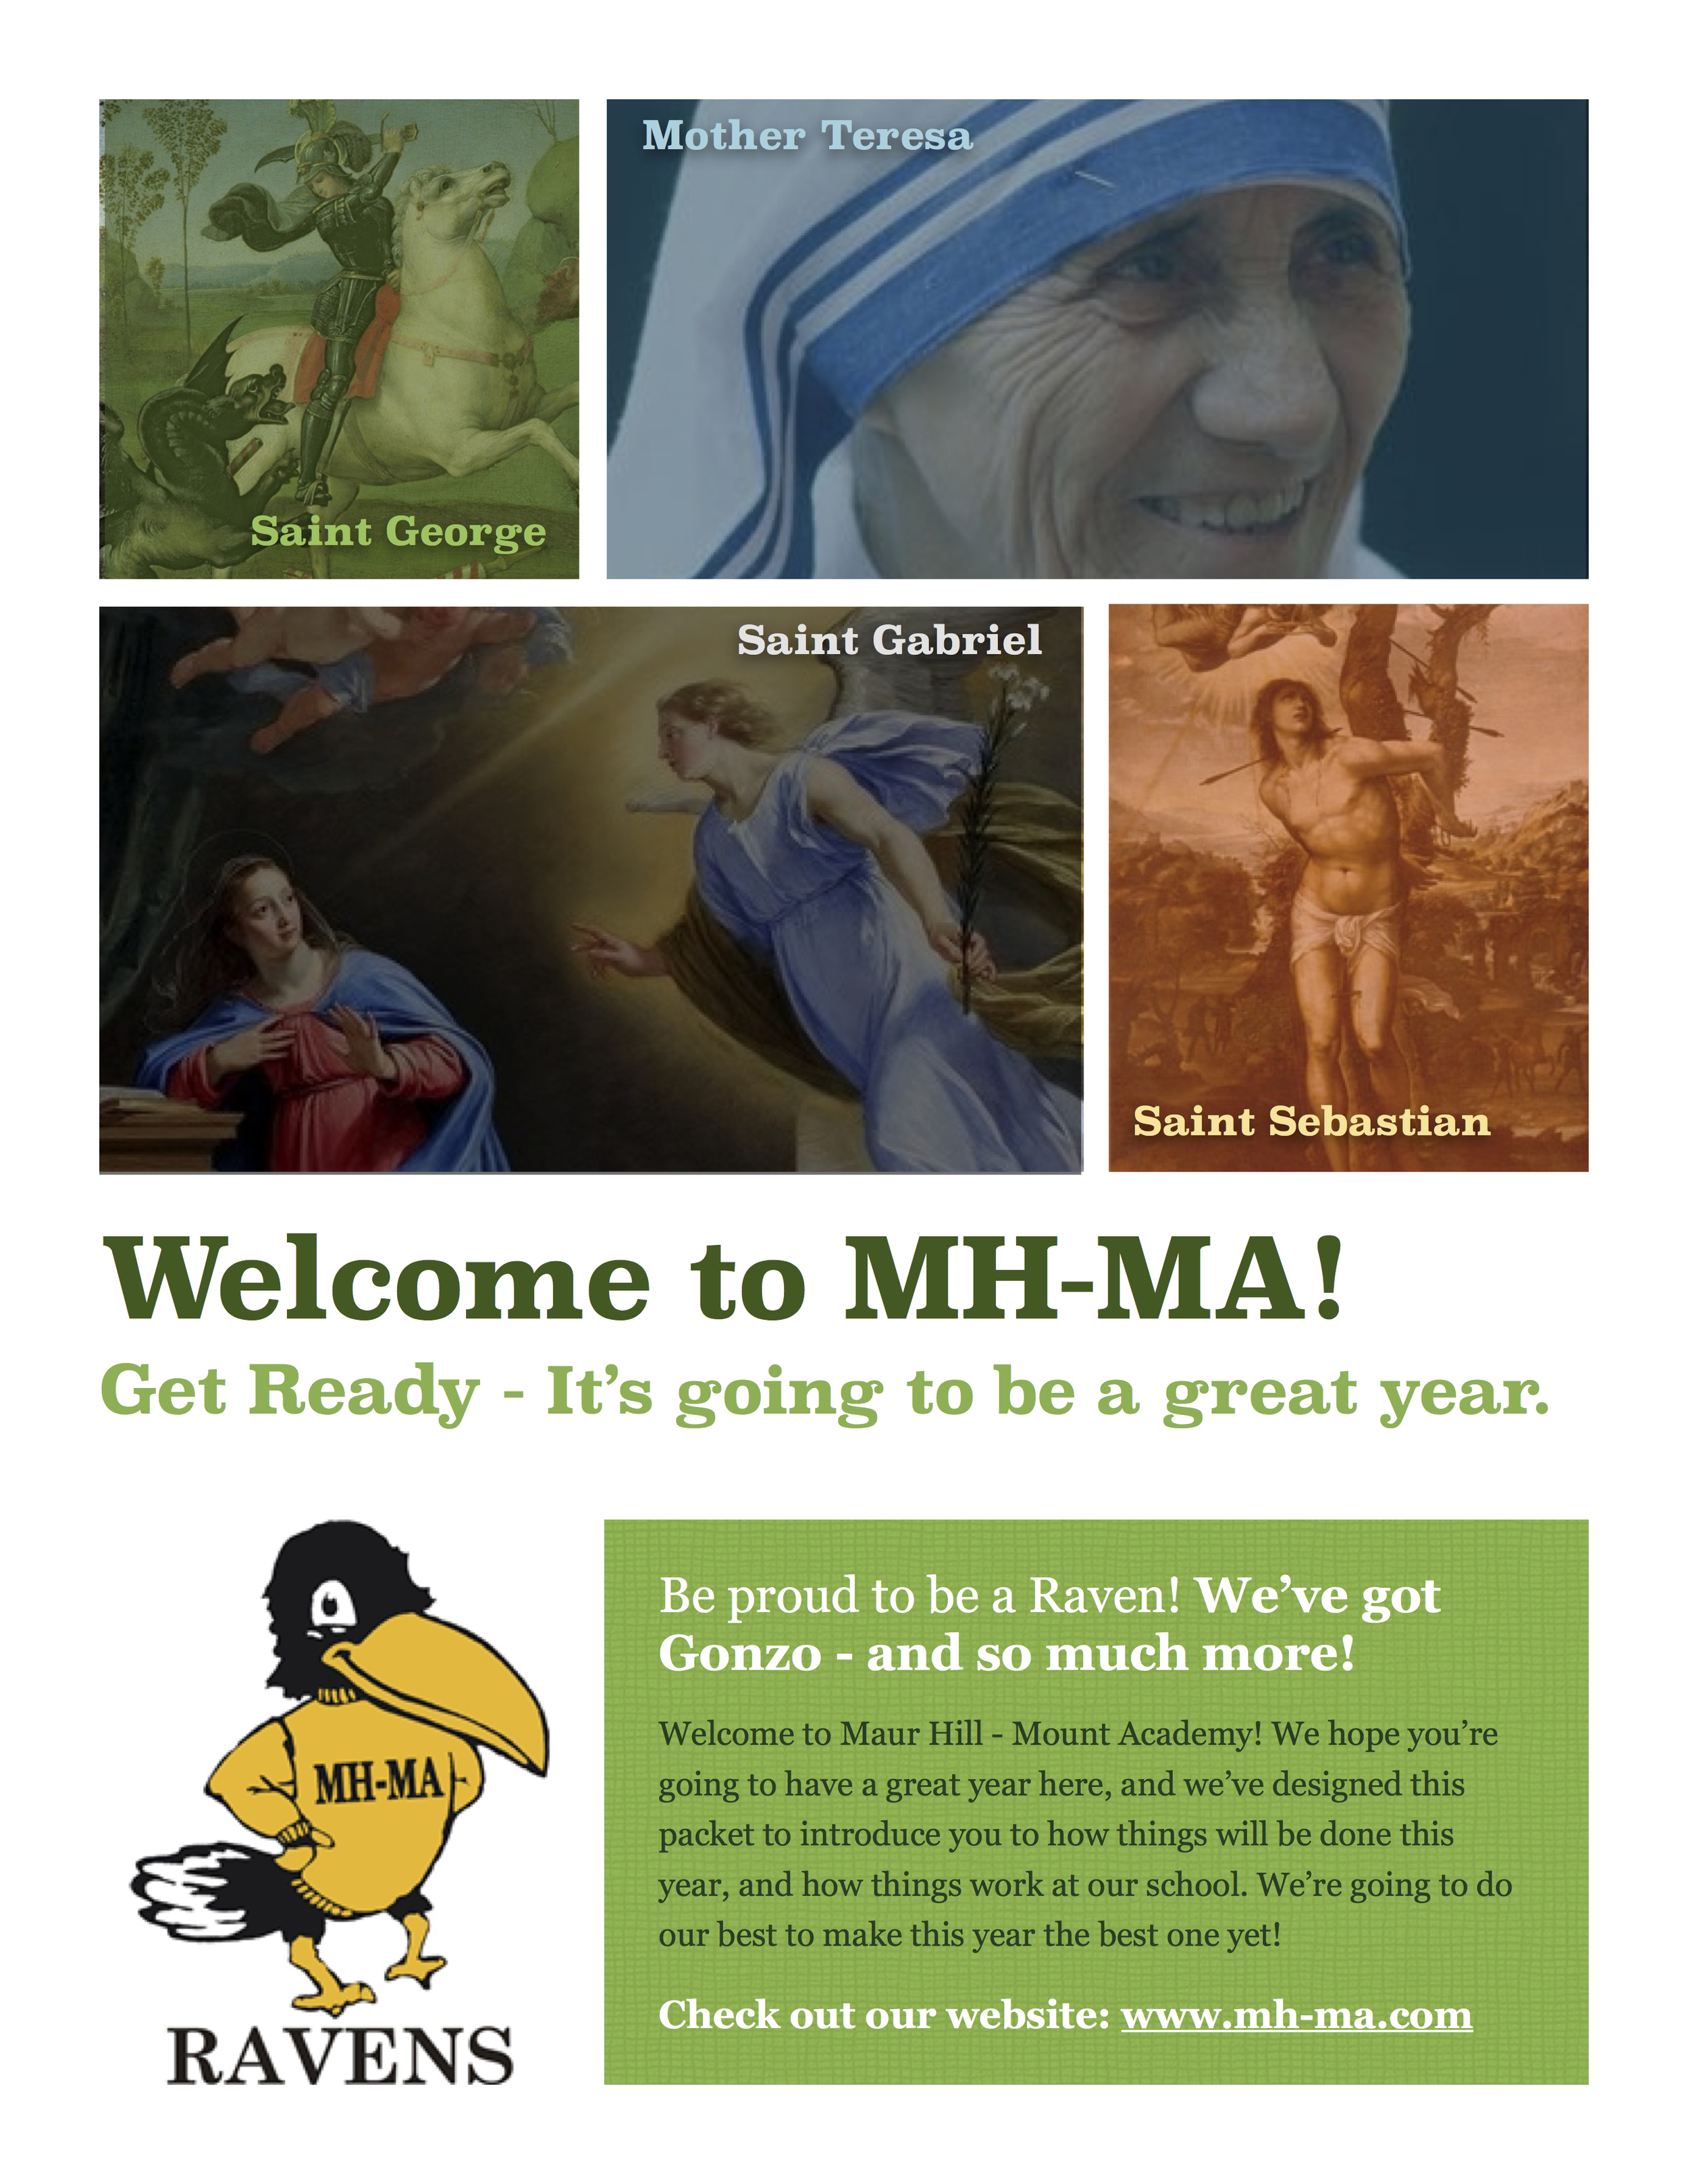 Introduction Packet for MH-MA 2014-15 School Year